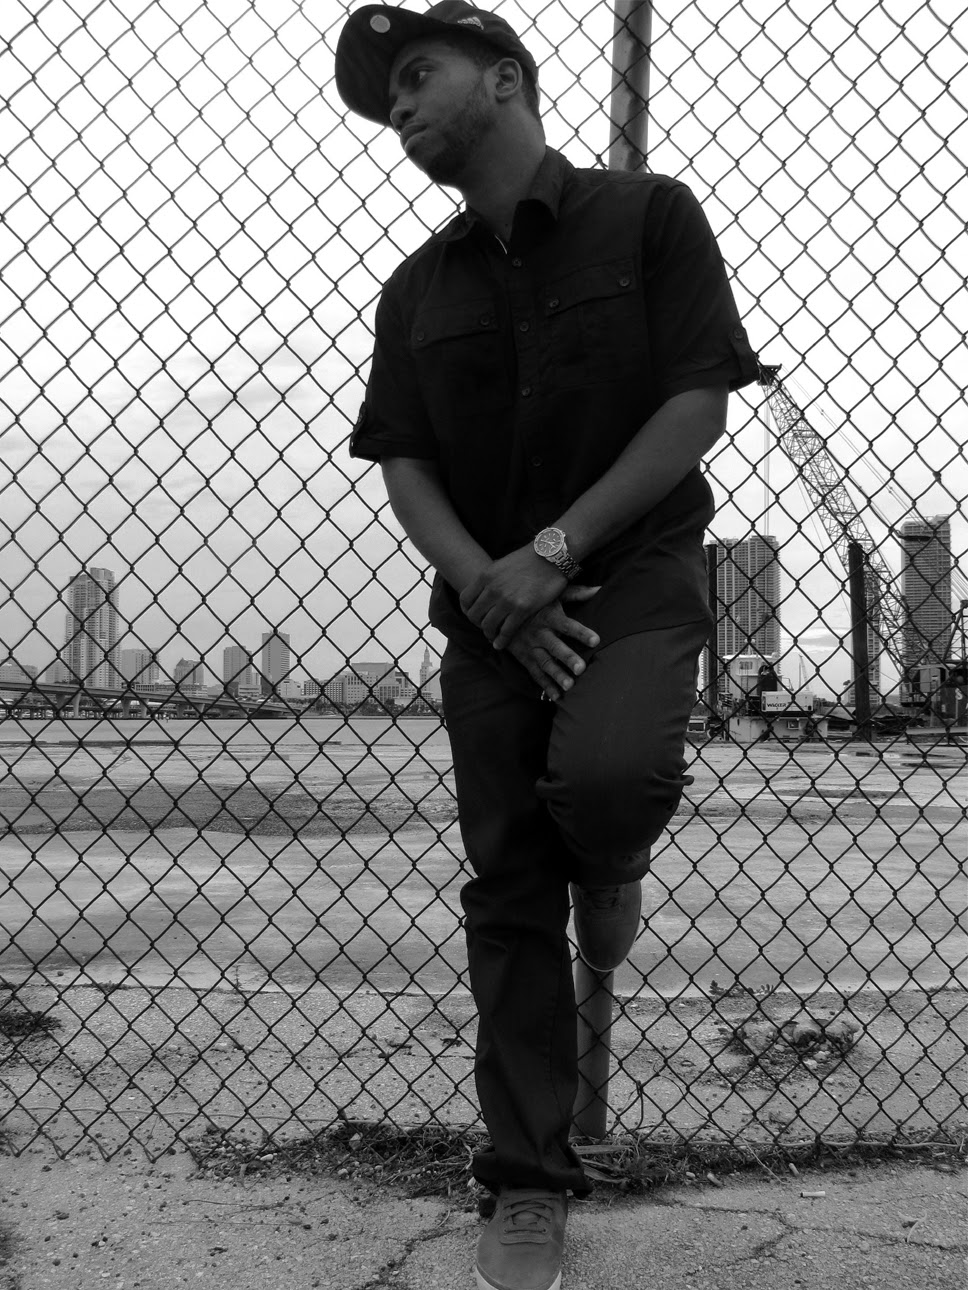 itsKOTIC 305 To My City Photoshoot image